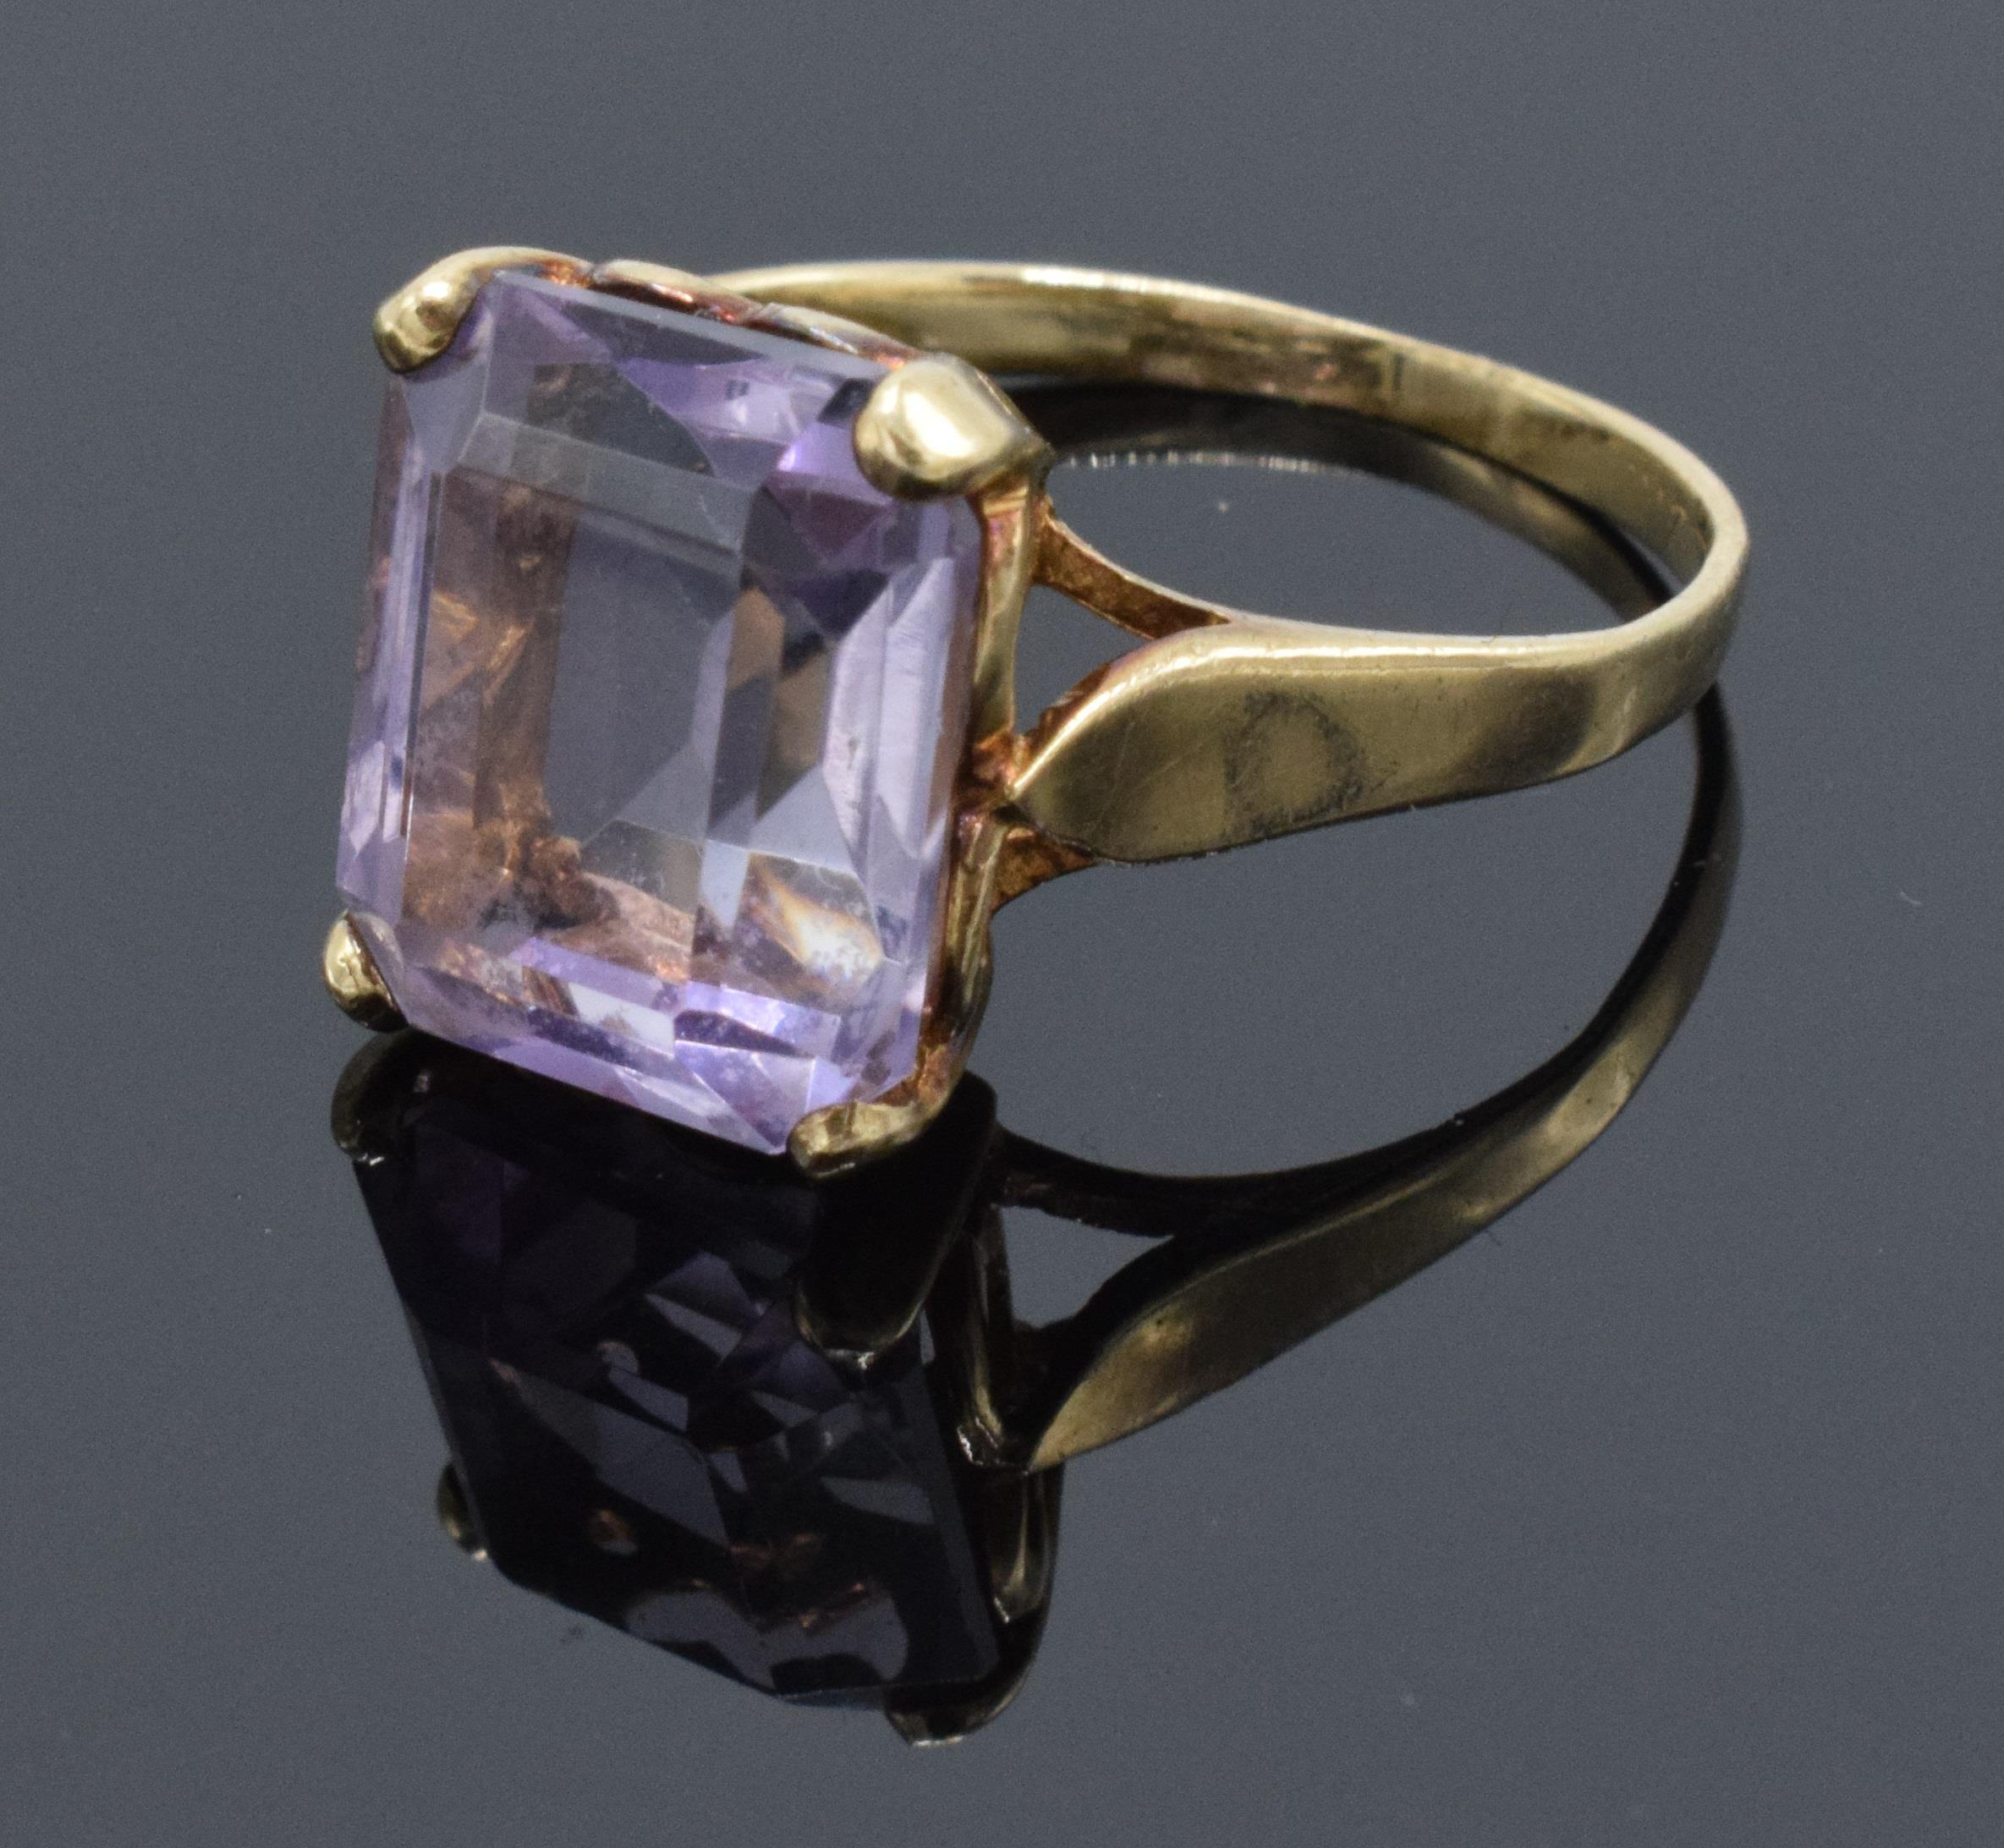 9ct gold ladies ring set with a large amethyst stone. 3.1 grams. UK size O/P. Hallmarks slightly